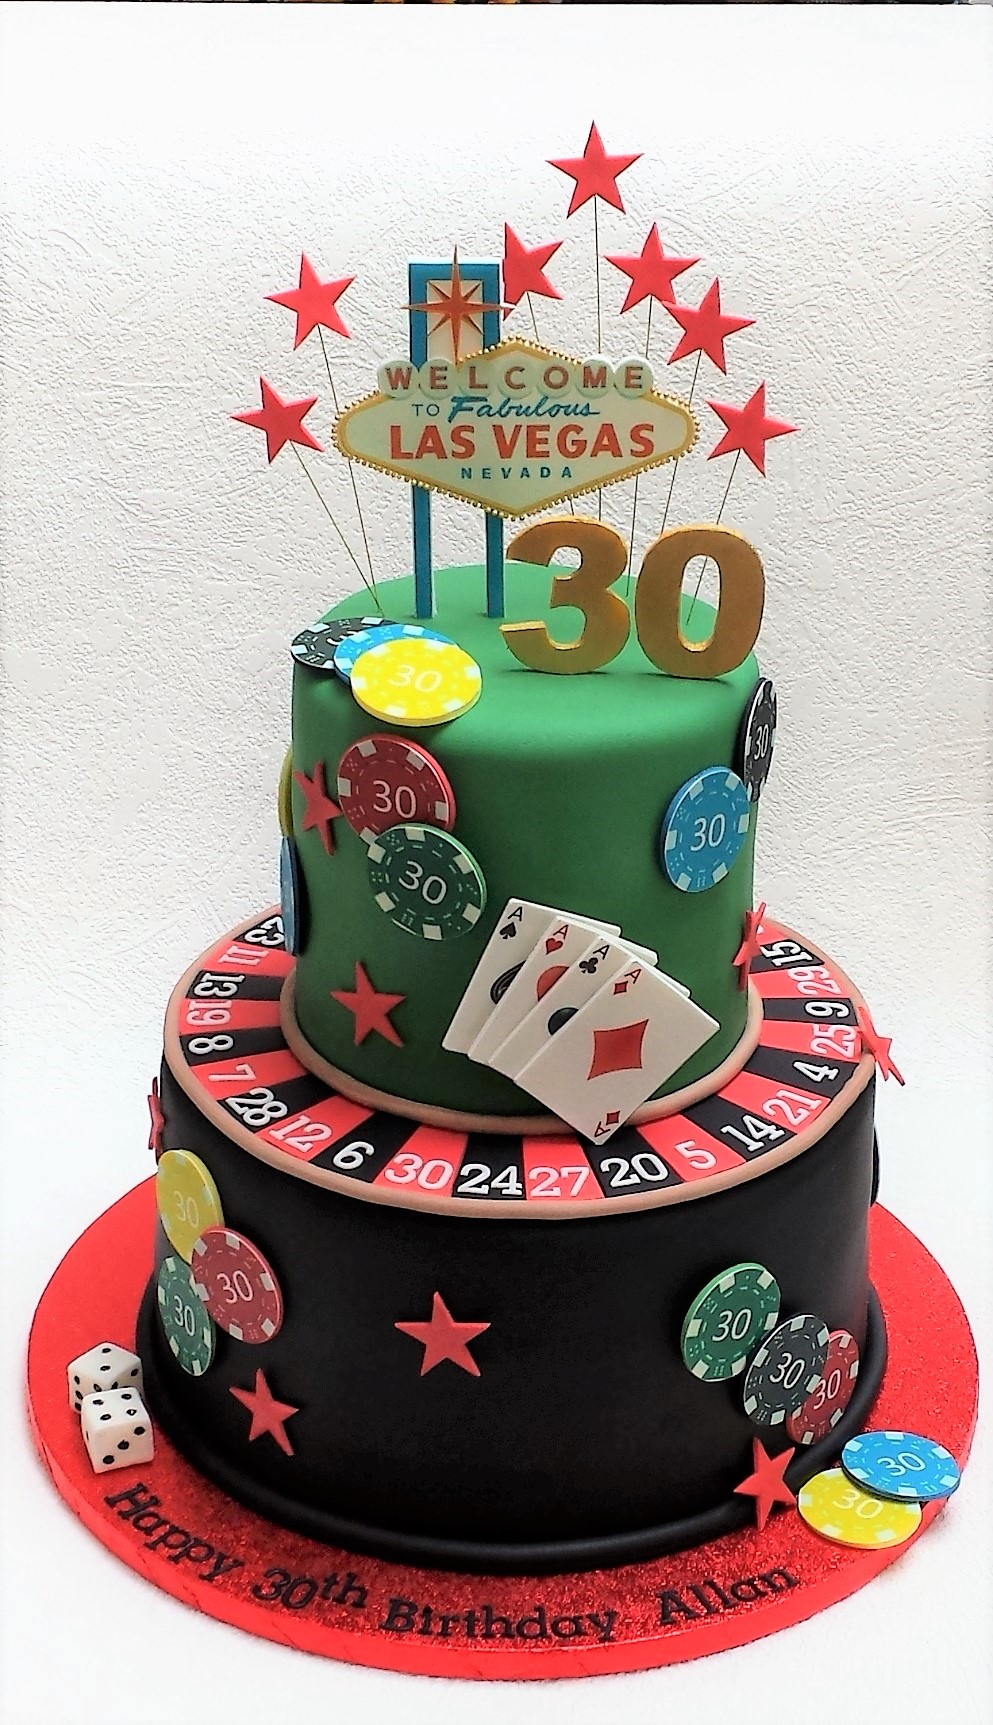 Vegas birthday cake